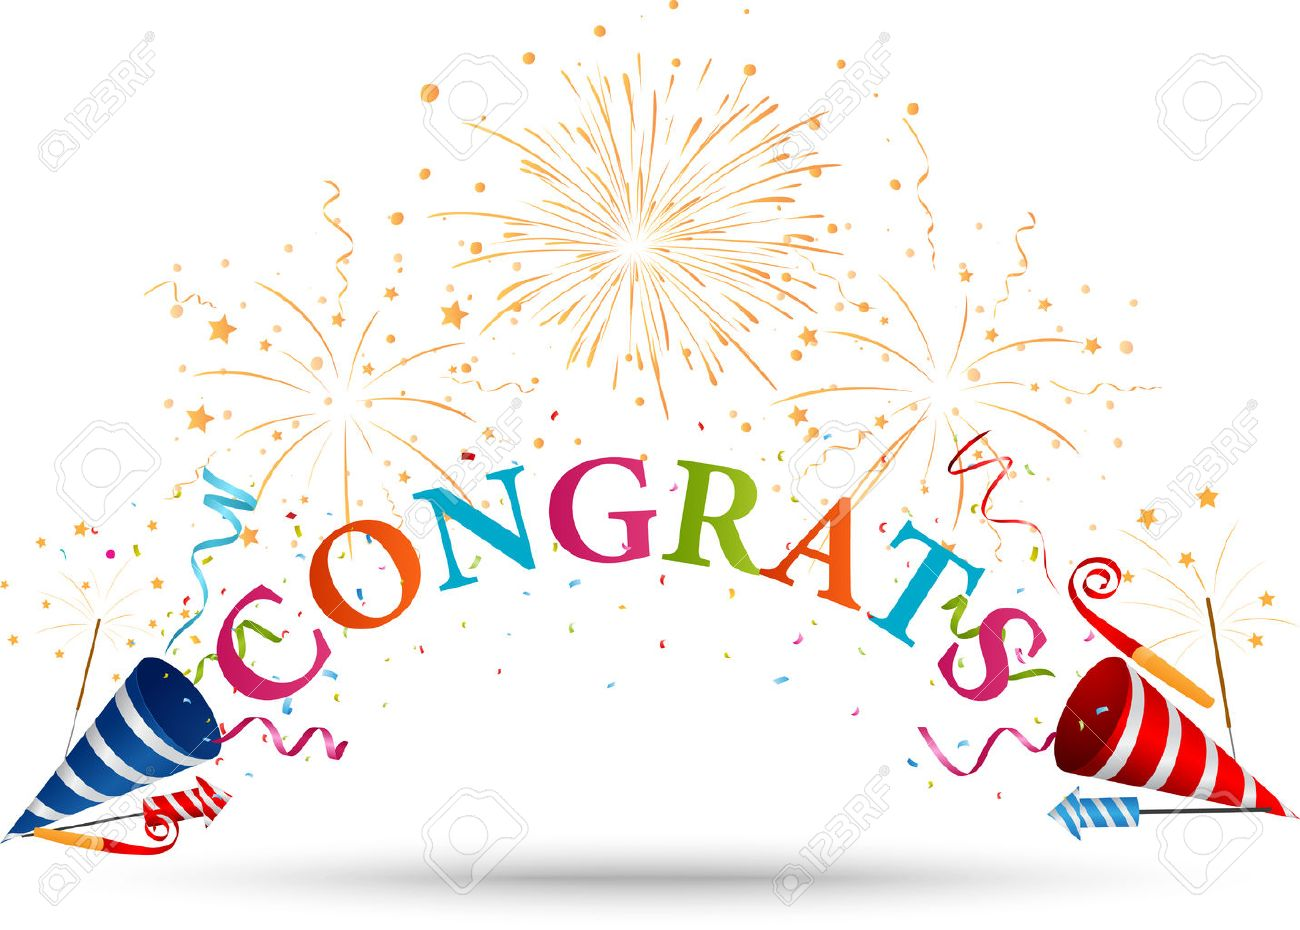 Congratulations Celebration With Fireworks Royalty Free Cliparts ...